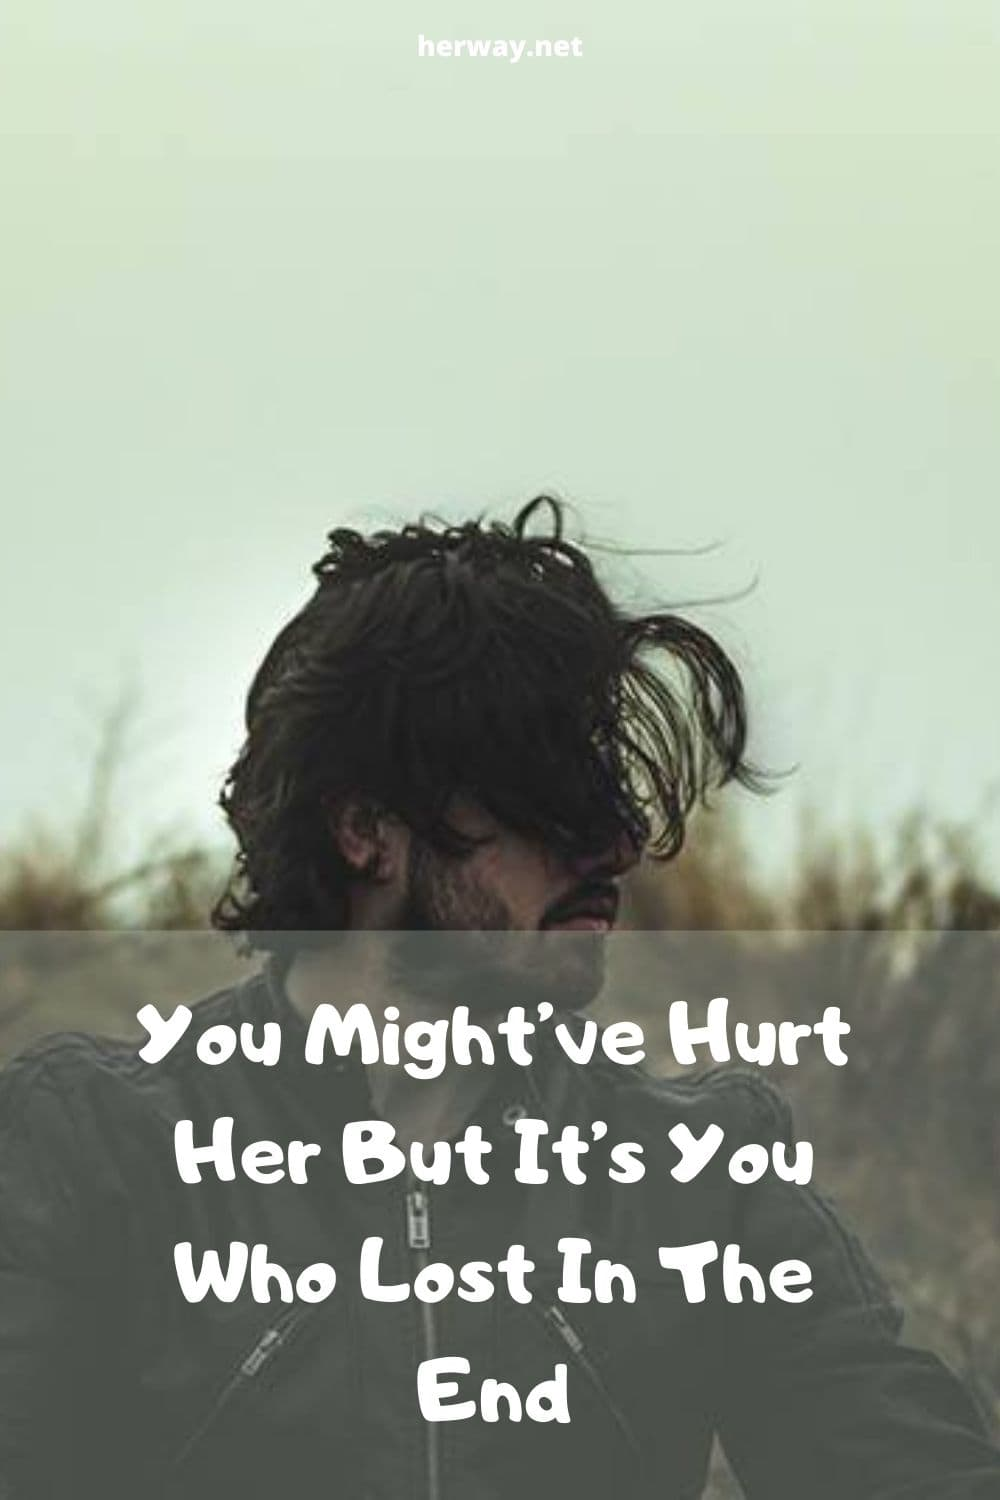 You Might've Hurt Her But It's You Who Lost In The End